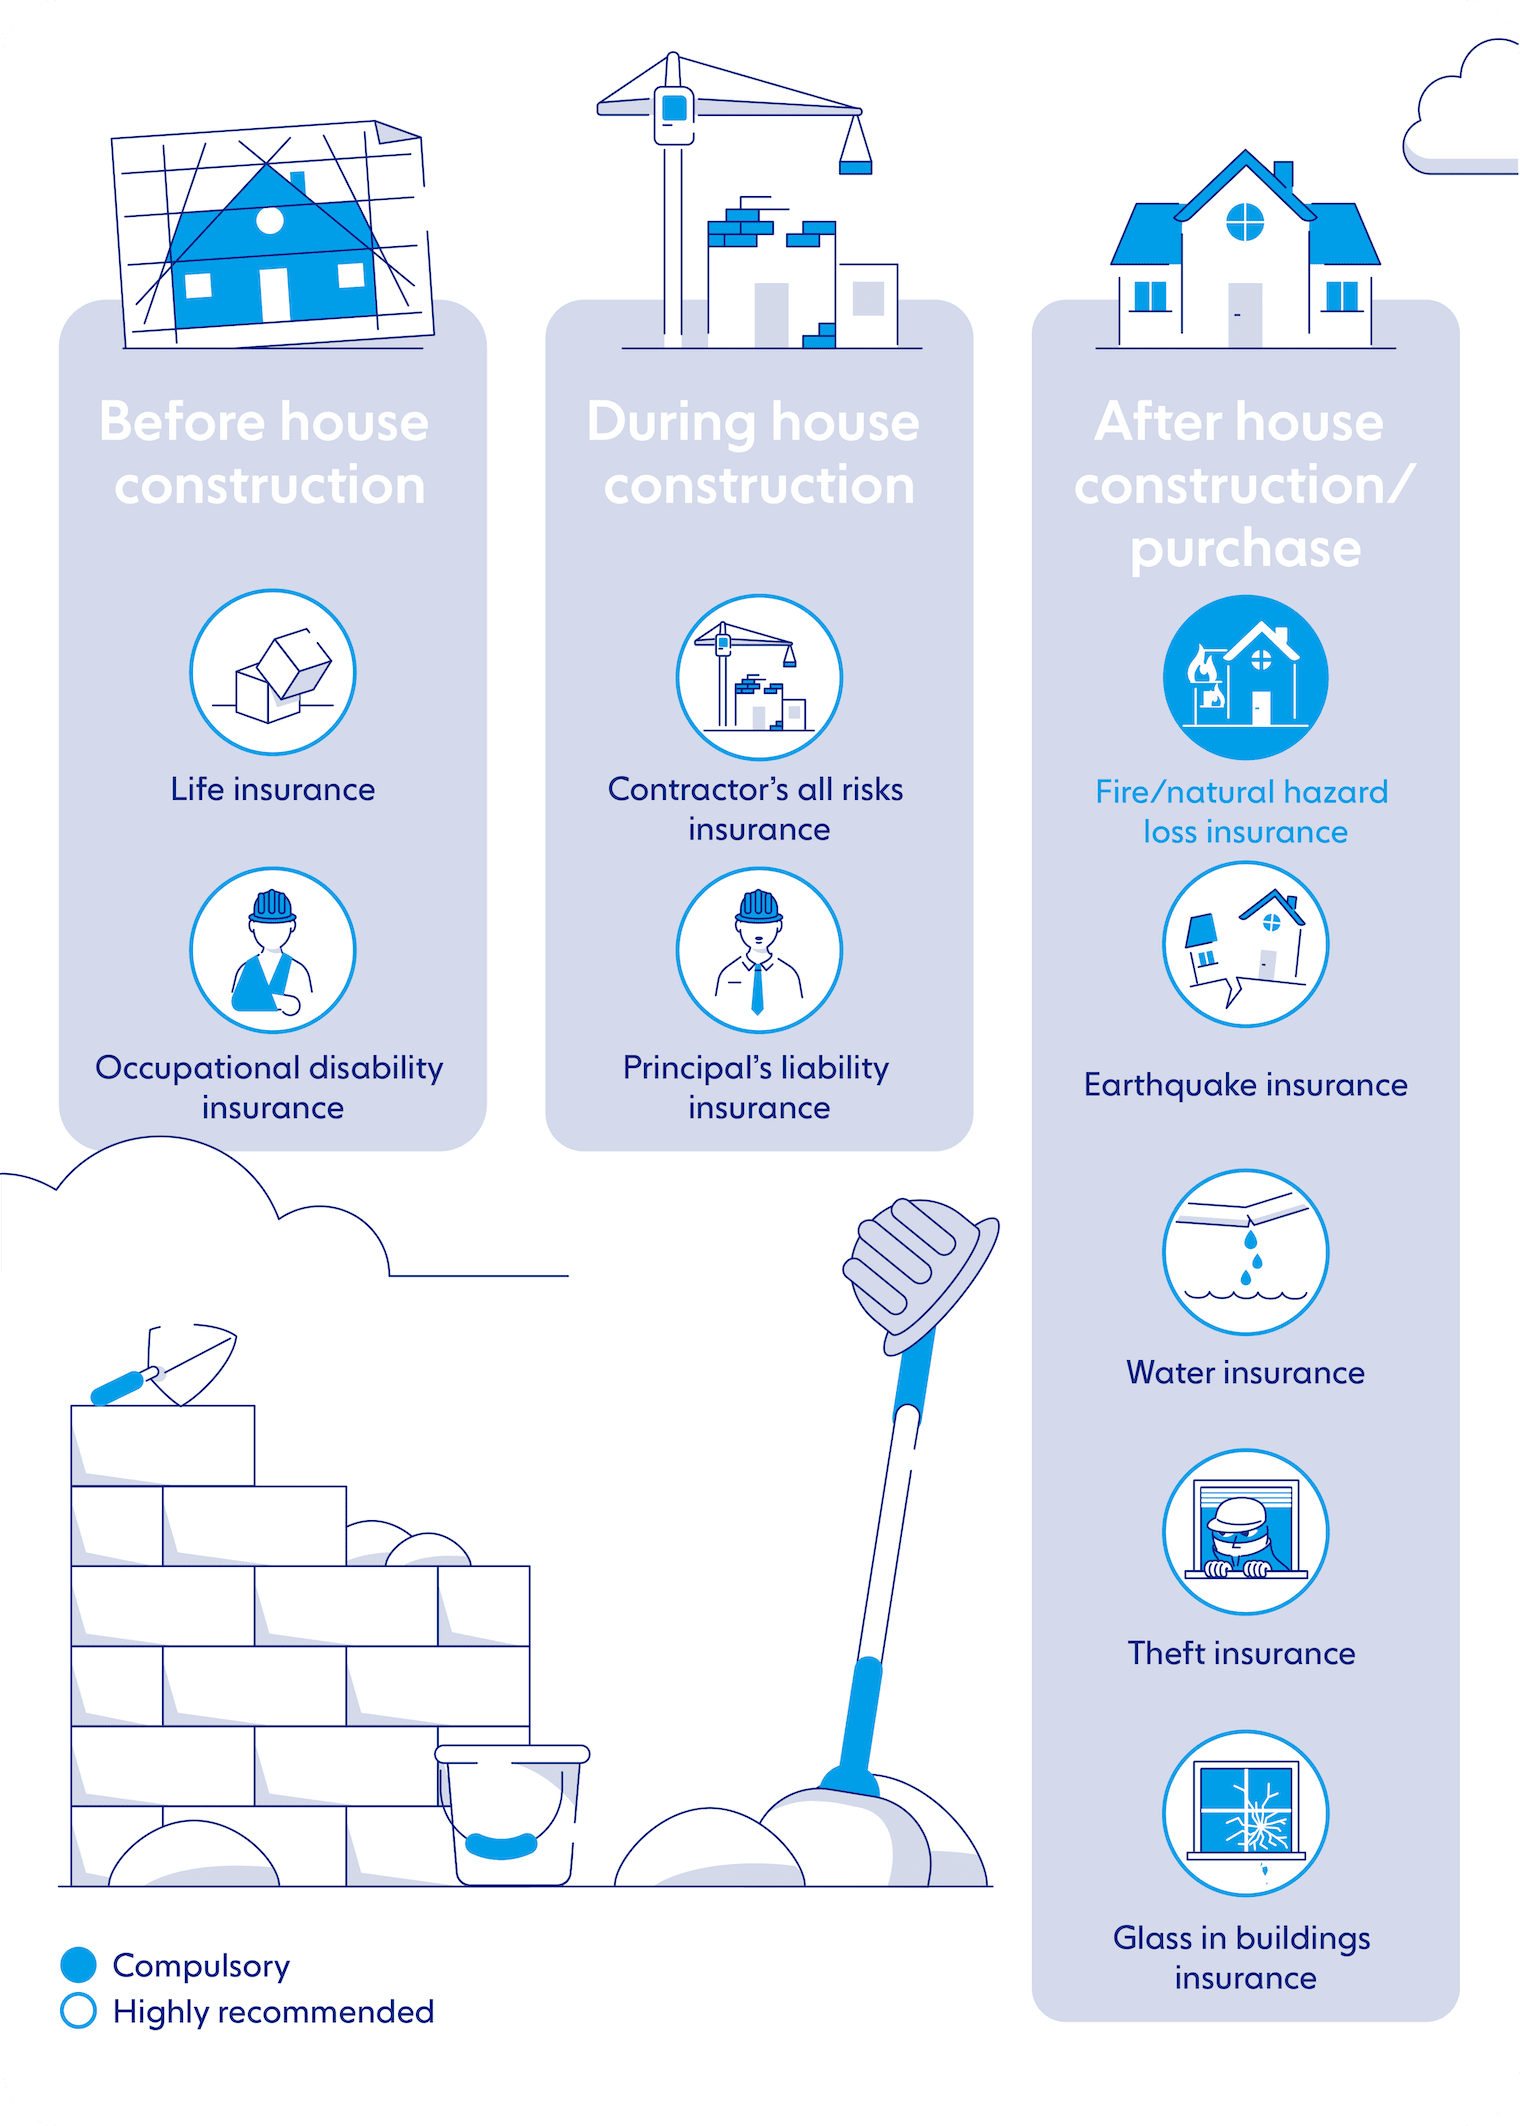 The infographic shows which insurance is needed when.